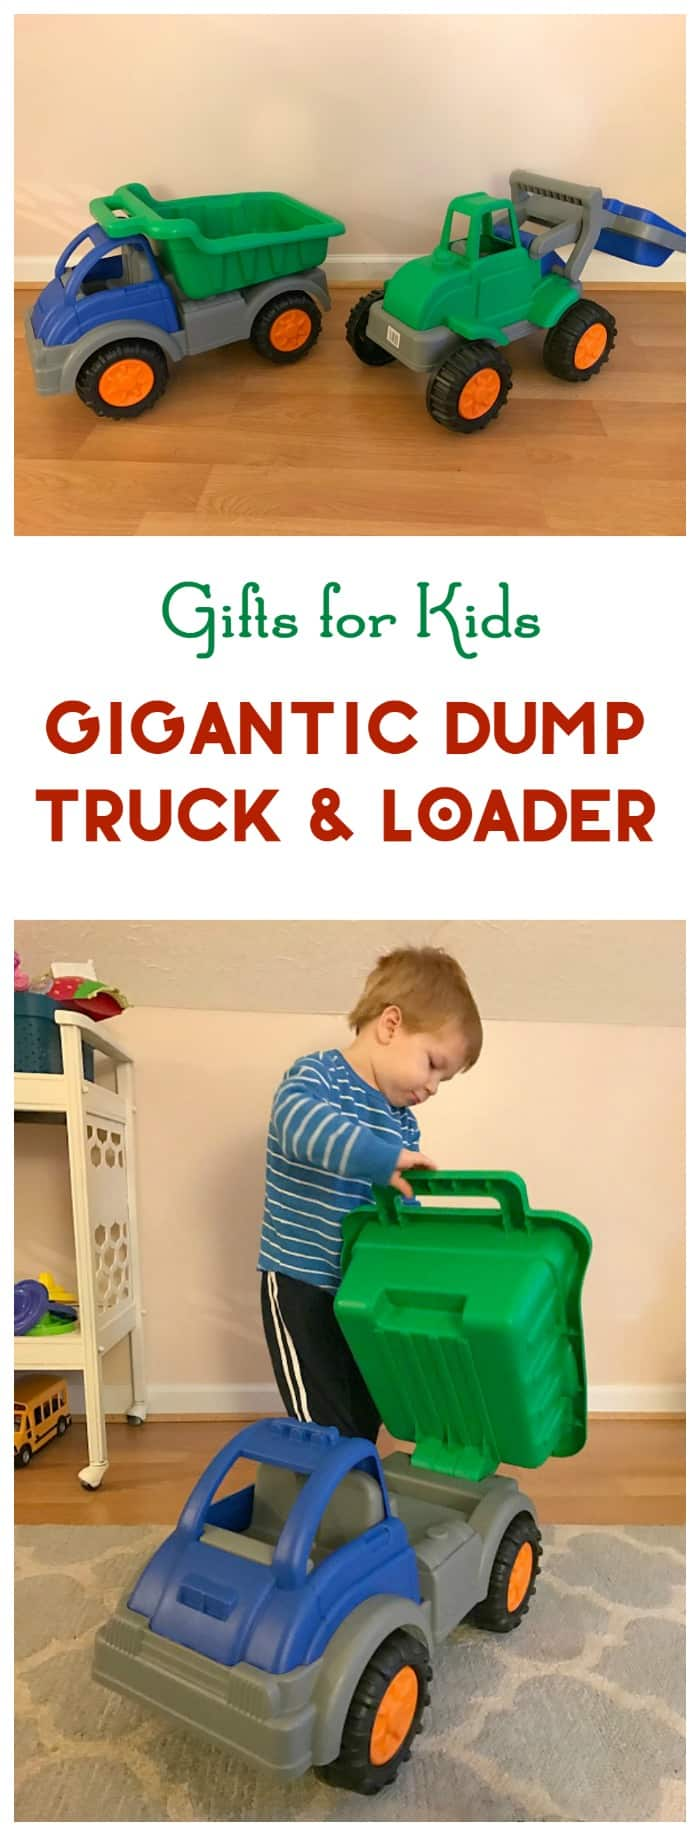 Looking for the perfect gift idea for kids who love trucks? You've never seen anything like the Gigantic Dump Truck & Loader!